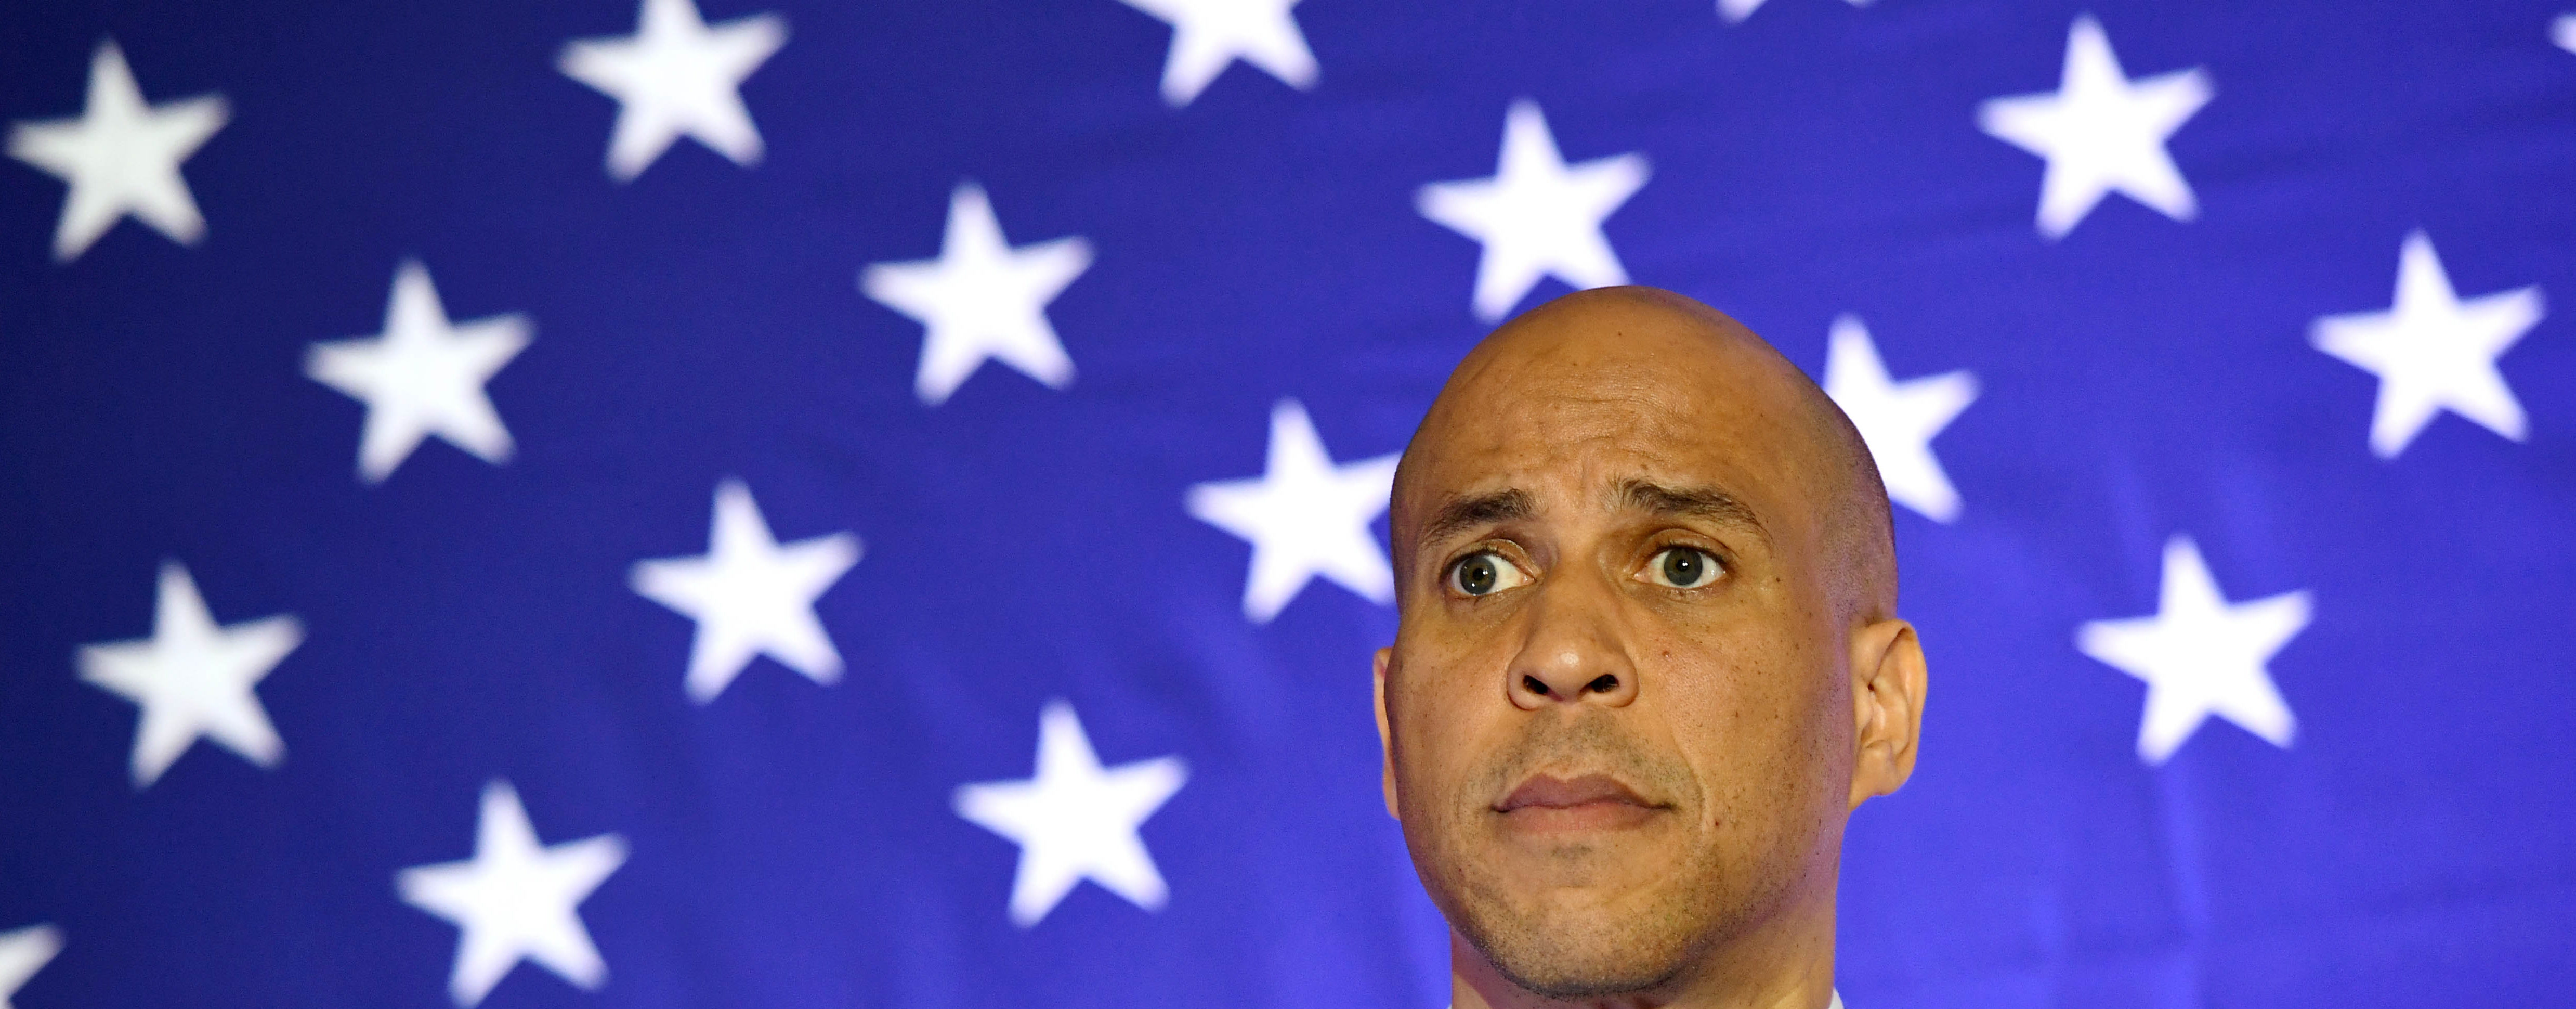 """U.S. Sen. Cory Booker (D-NJ) listens to a question at his """"Conversation with Cory"""" campaign event at the Nevada Partners Event Center on February 24, 2019 in North Las Vegas, Nevada. Booker is campaigning for the 2020 Democratic nomination for president. (Photo by Ethan Miller/Getty Images)"""